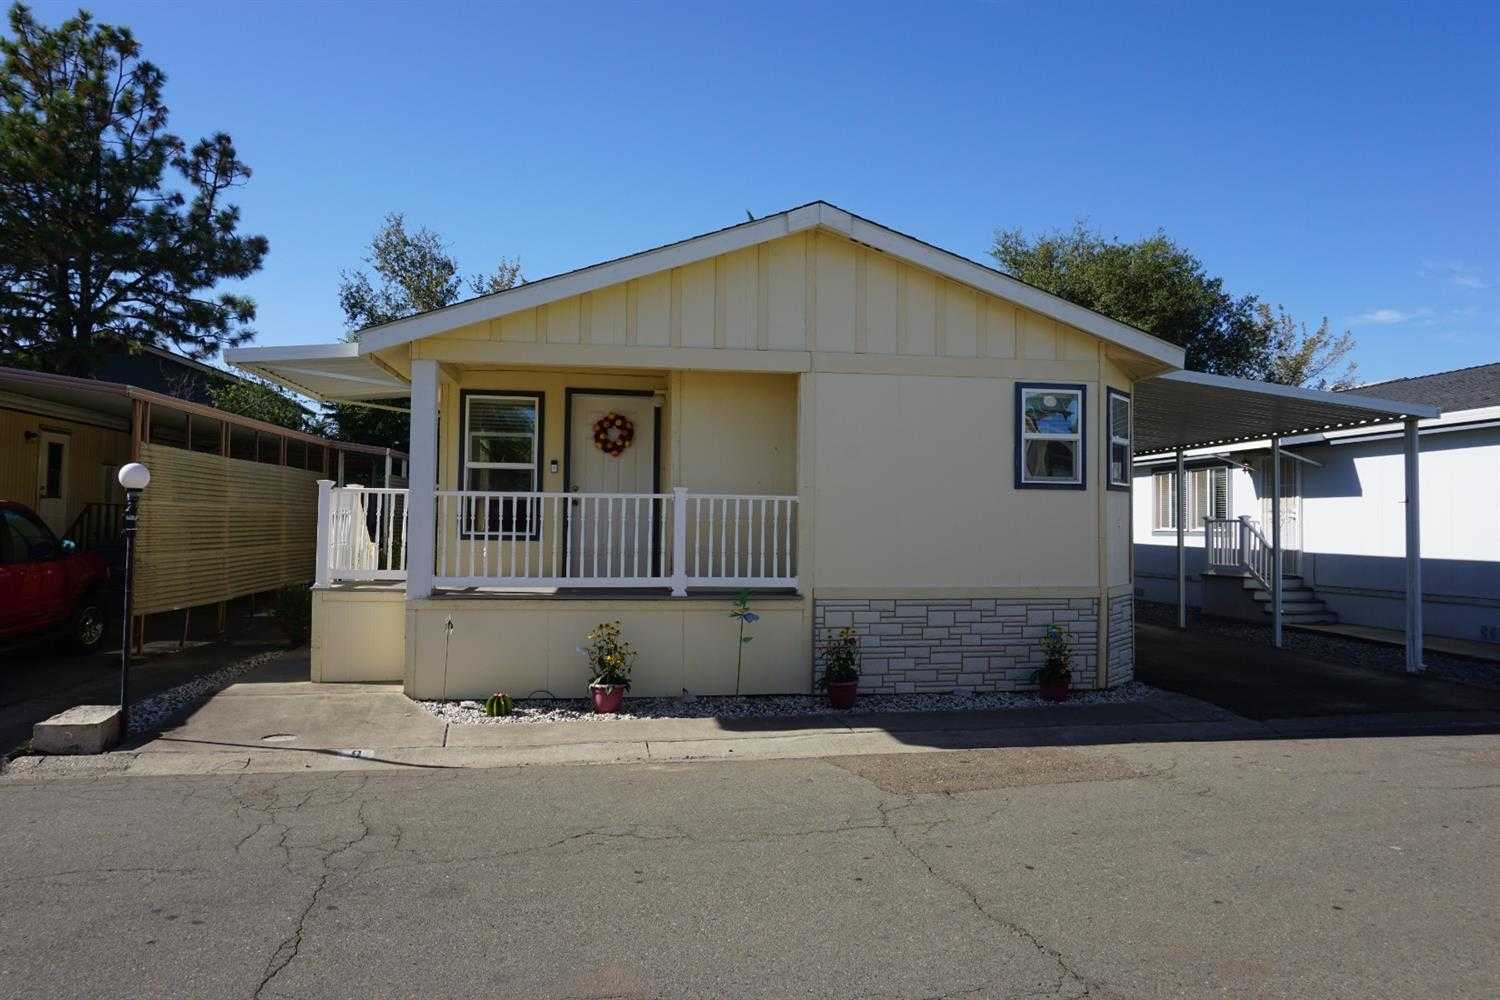 $124,997 - 3Br/2Ba -  for Sale in Rocklin